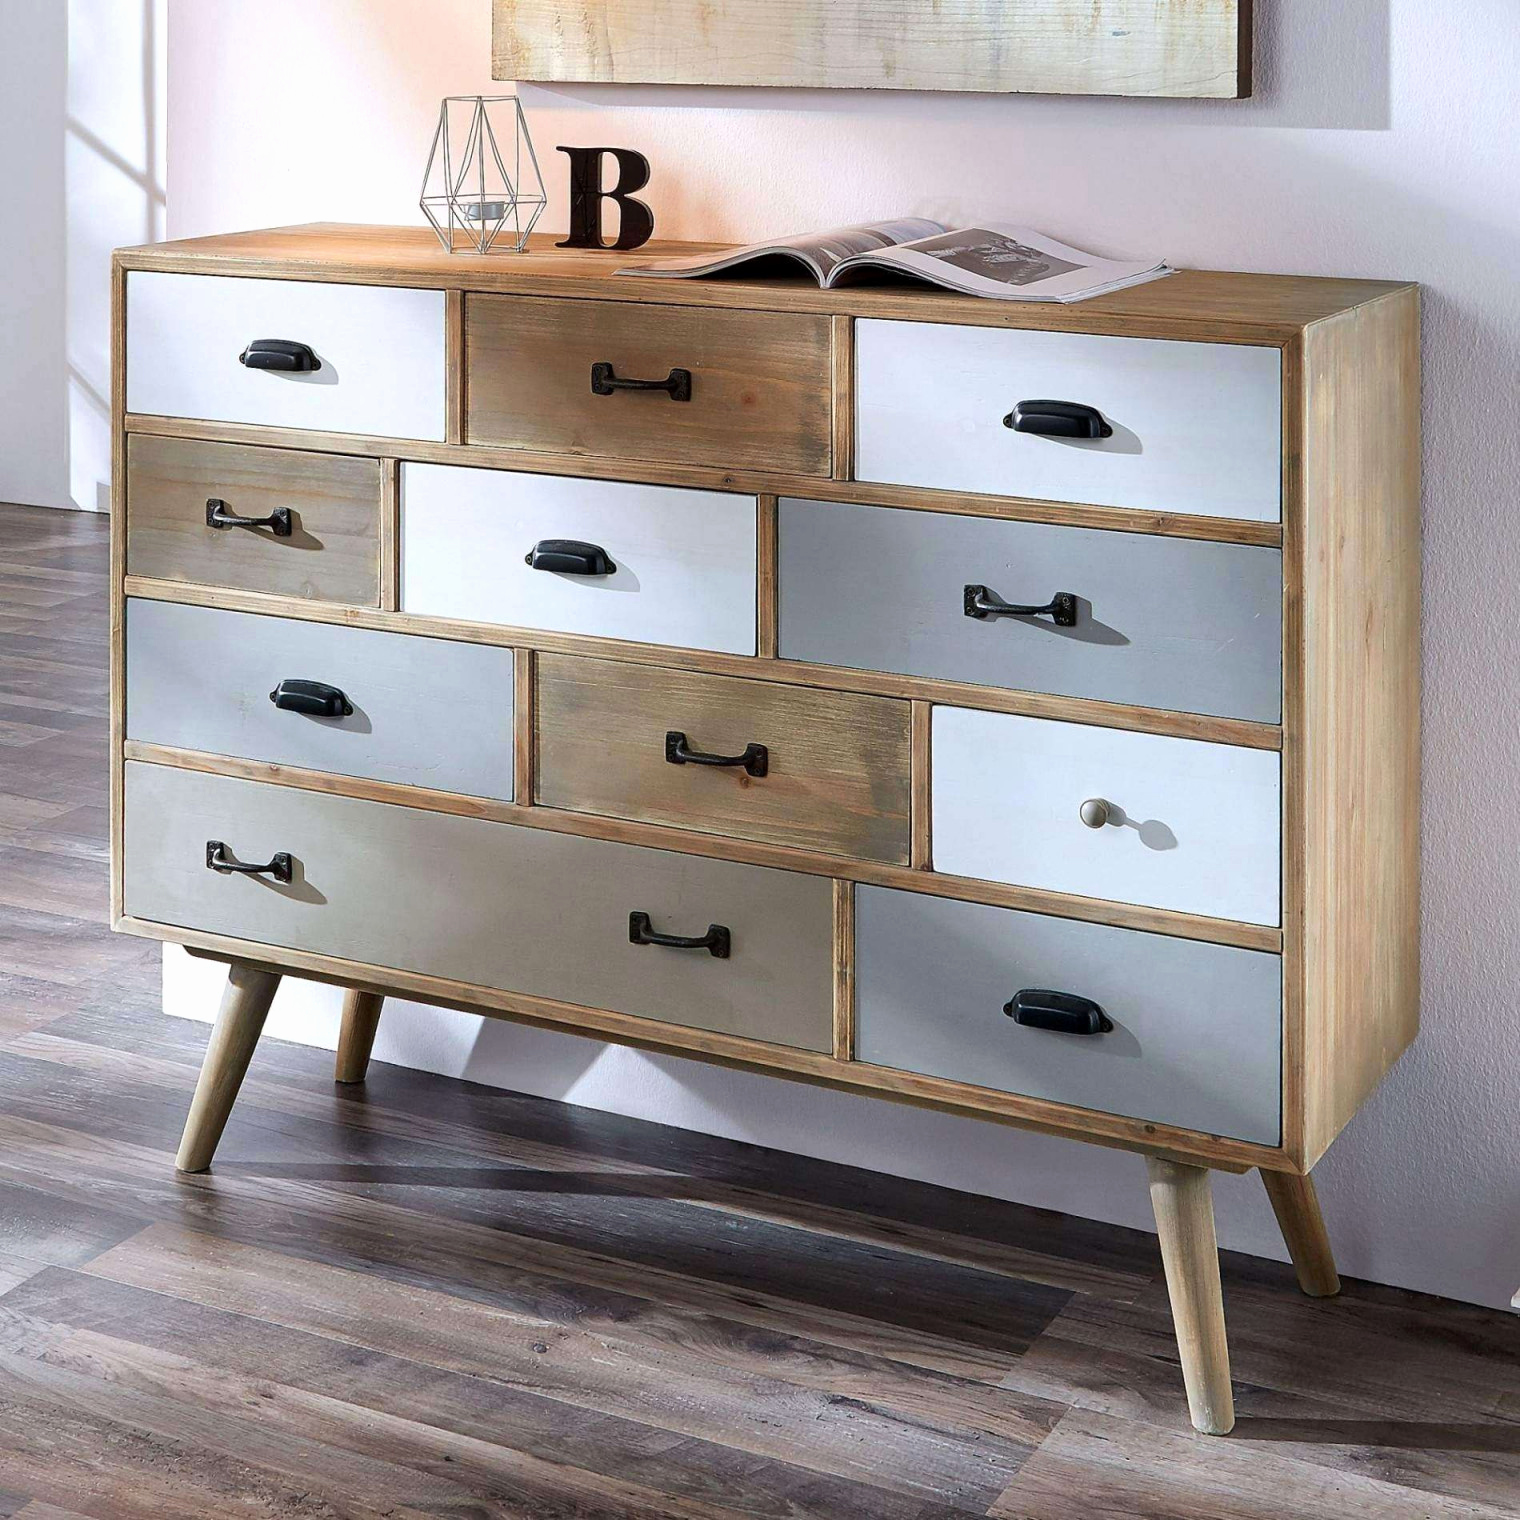 Ikea Hack Sideboard Frisch Ikea Sideboard Tv Stand Moderne Ikea Hacks Besta with Oak Plank